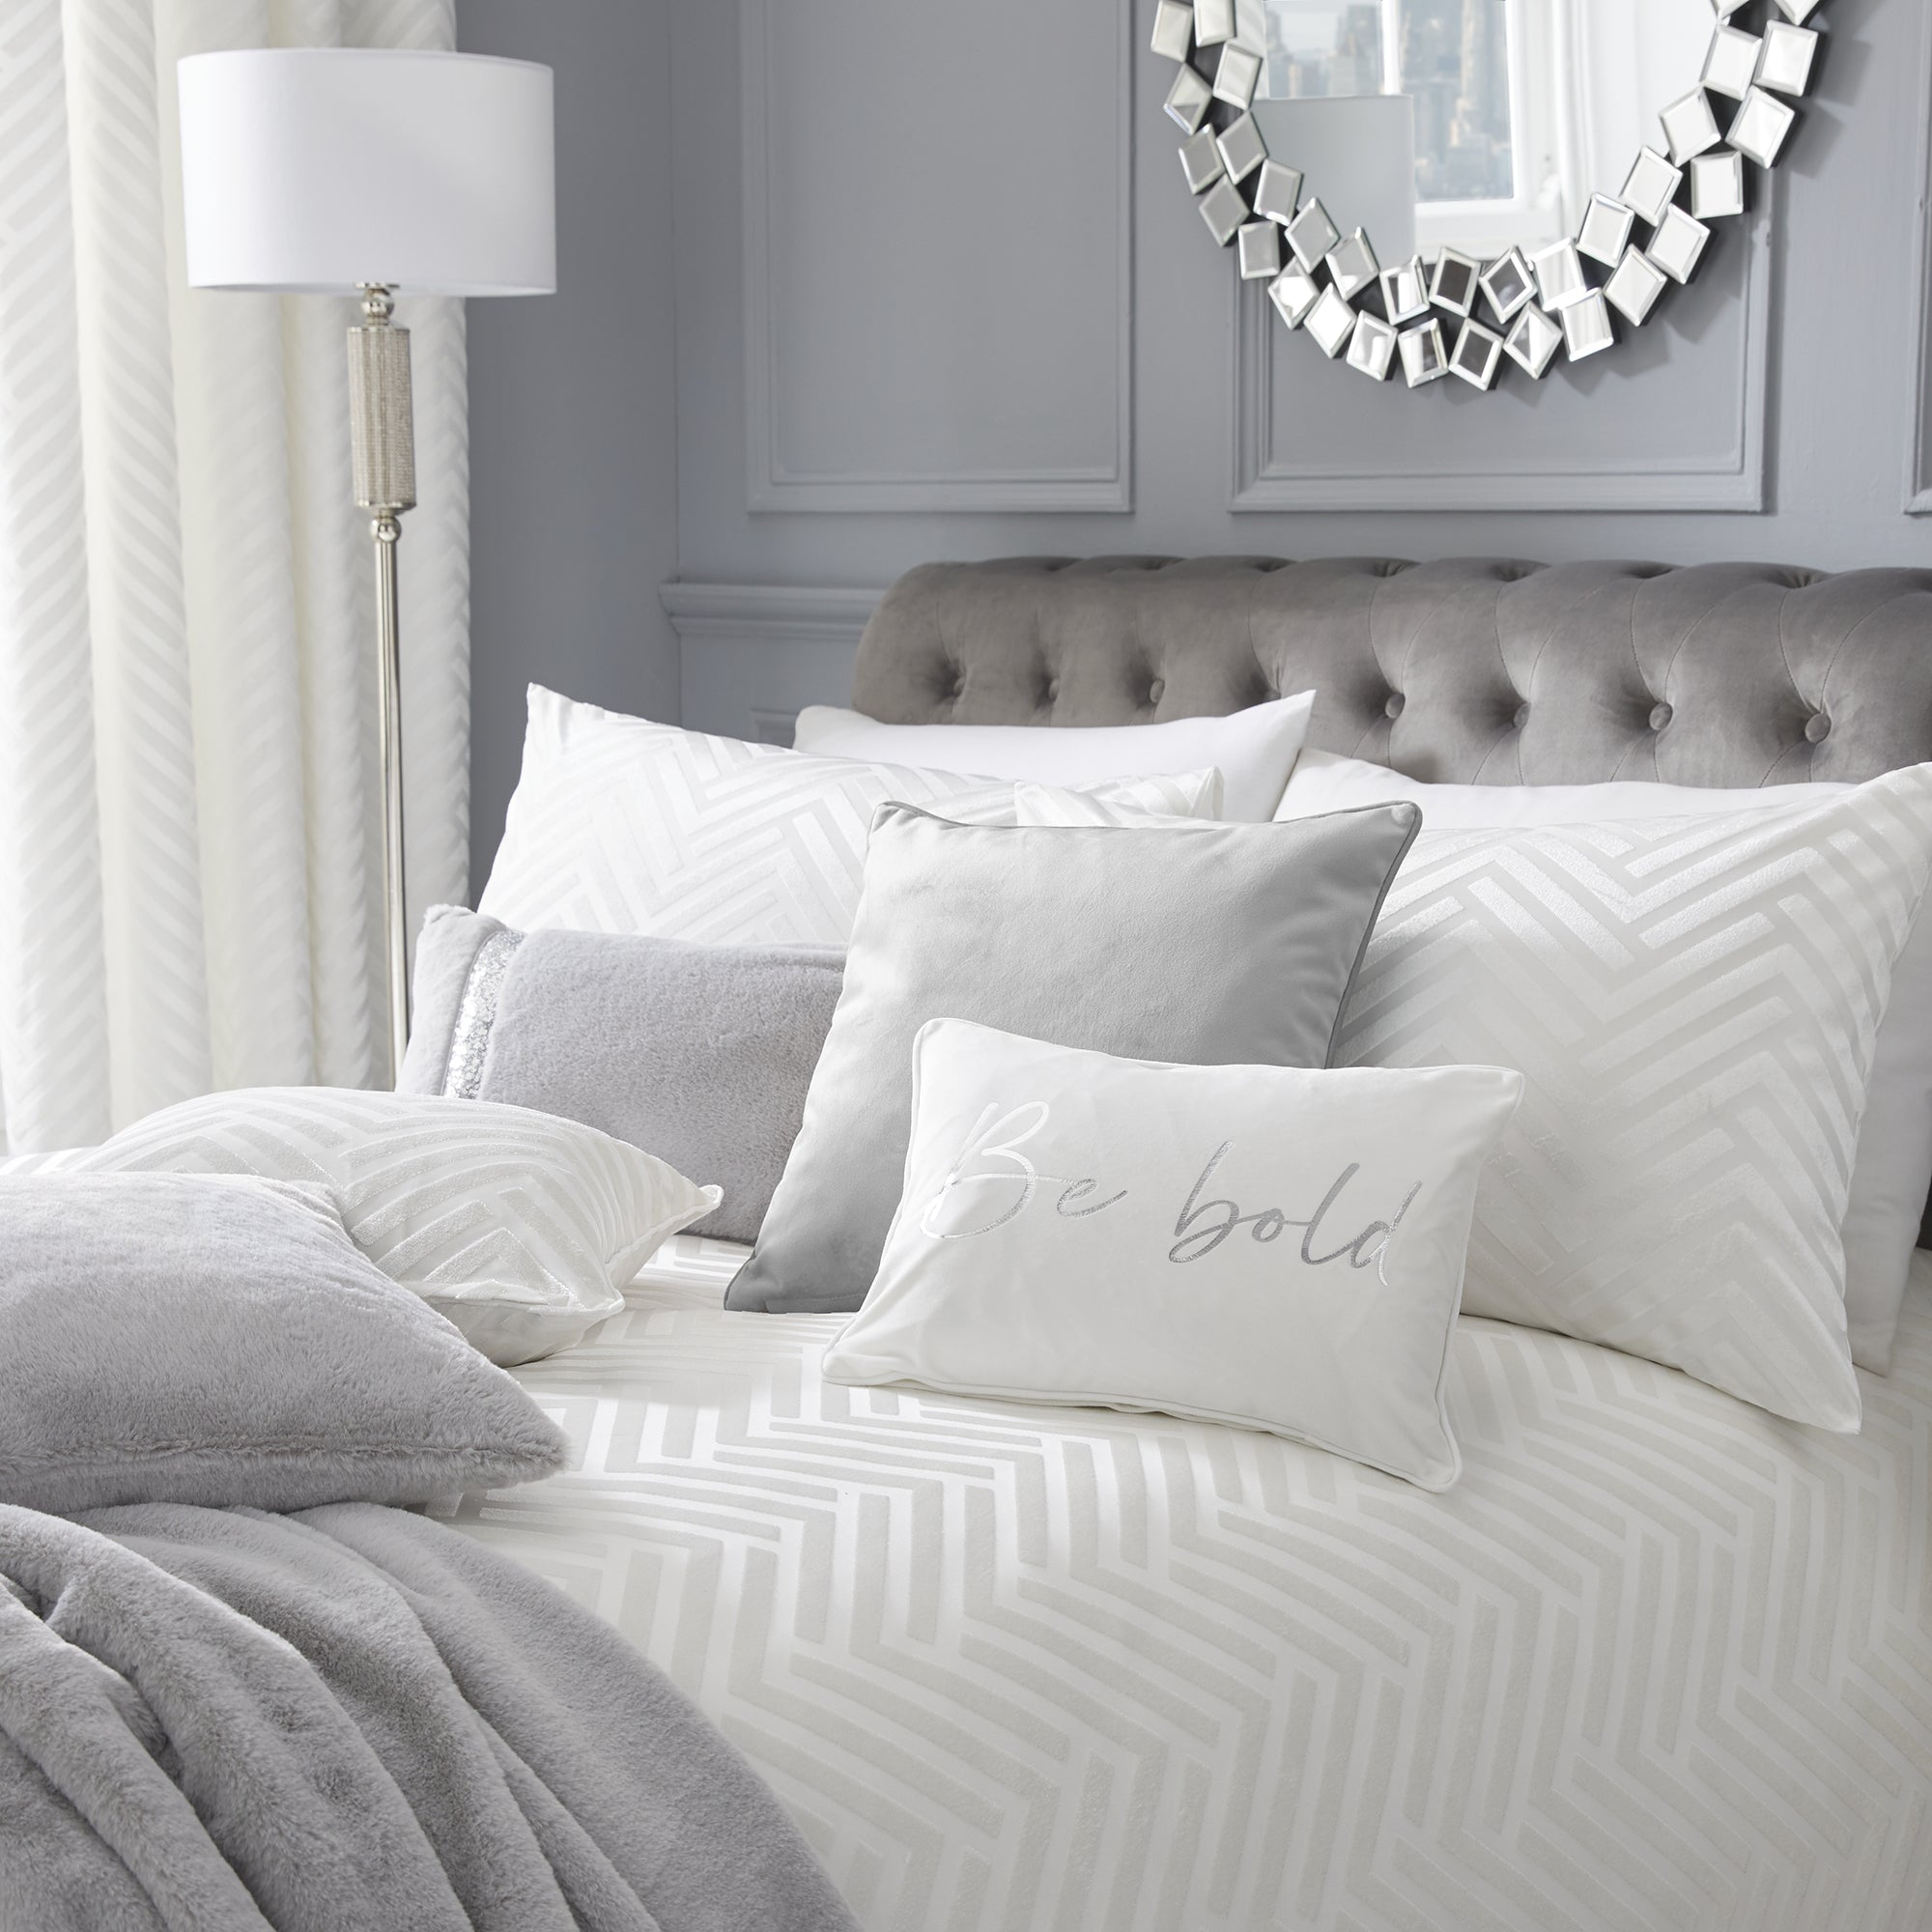 Faye - Tufted Chevron Duvet Cover Set in Ivory - By Caprice